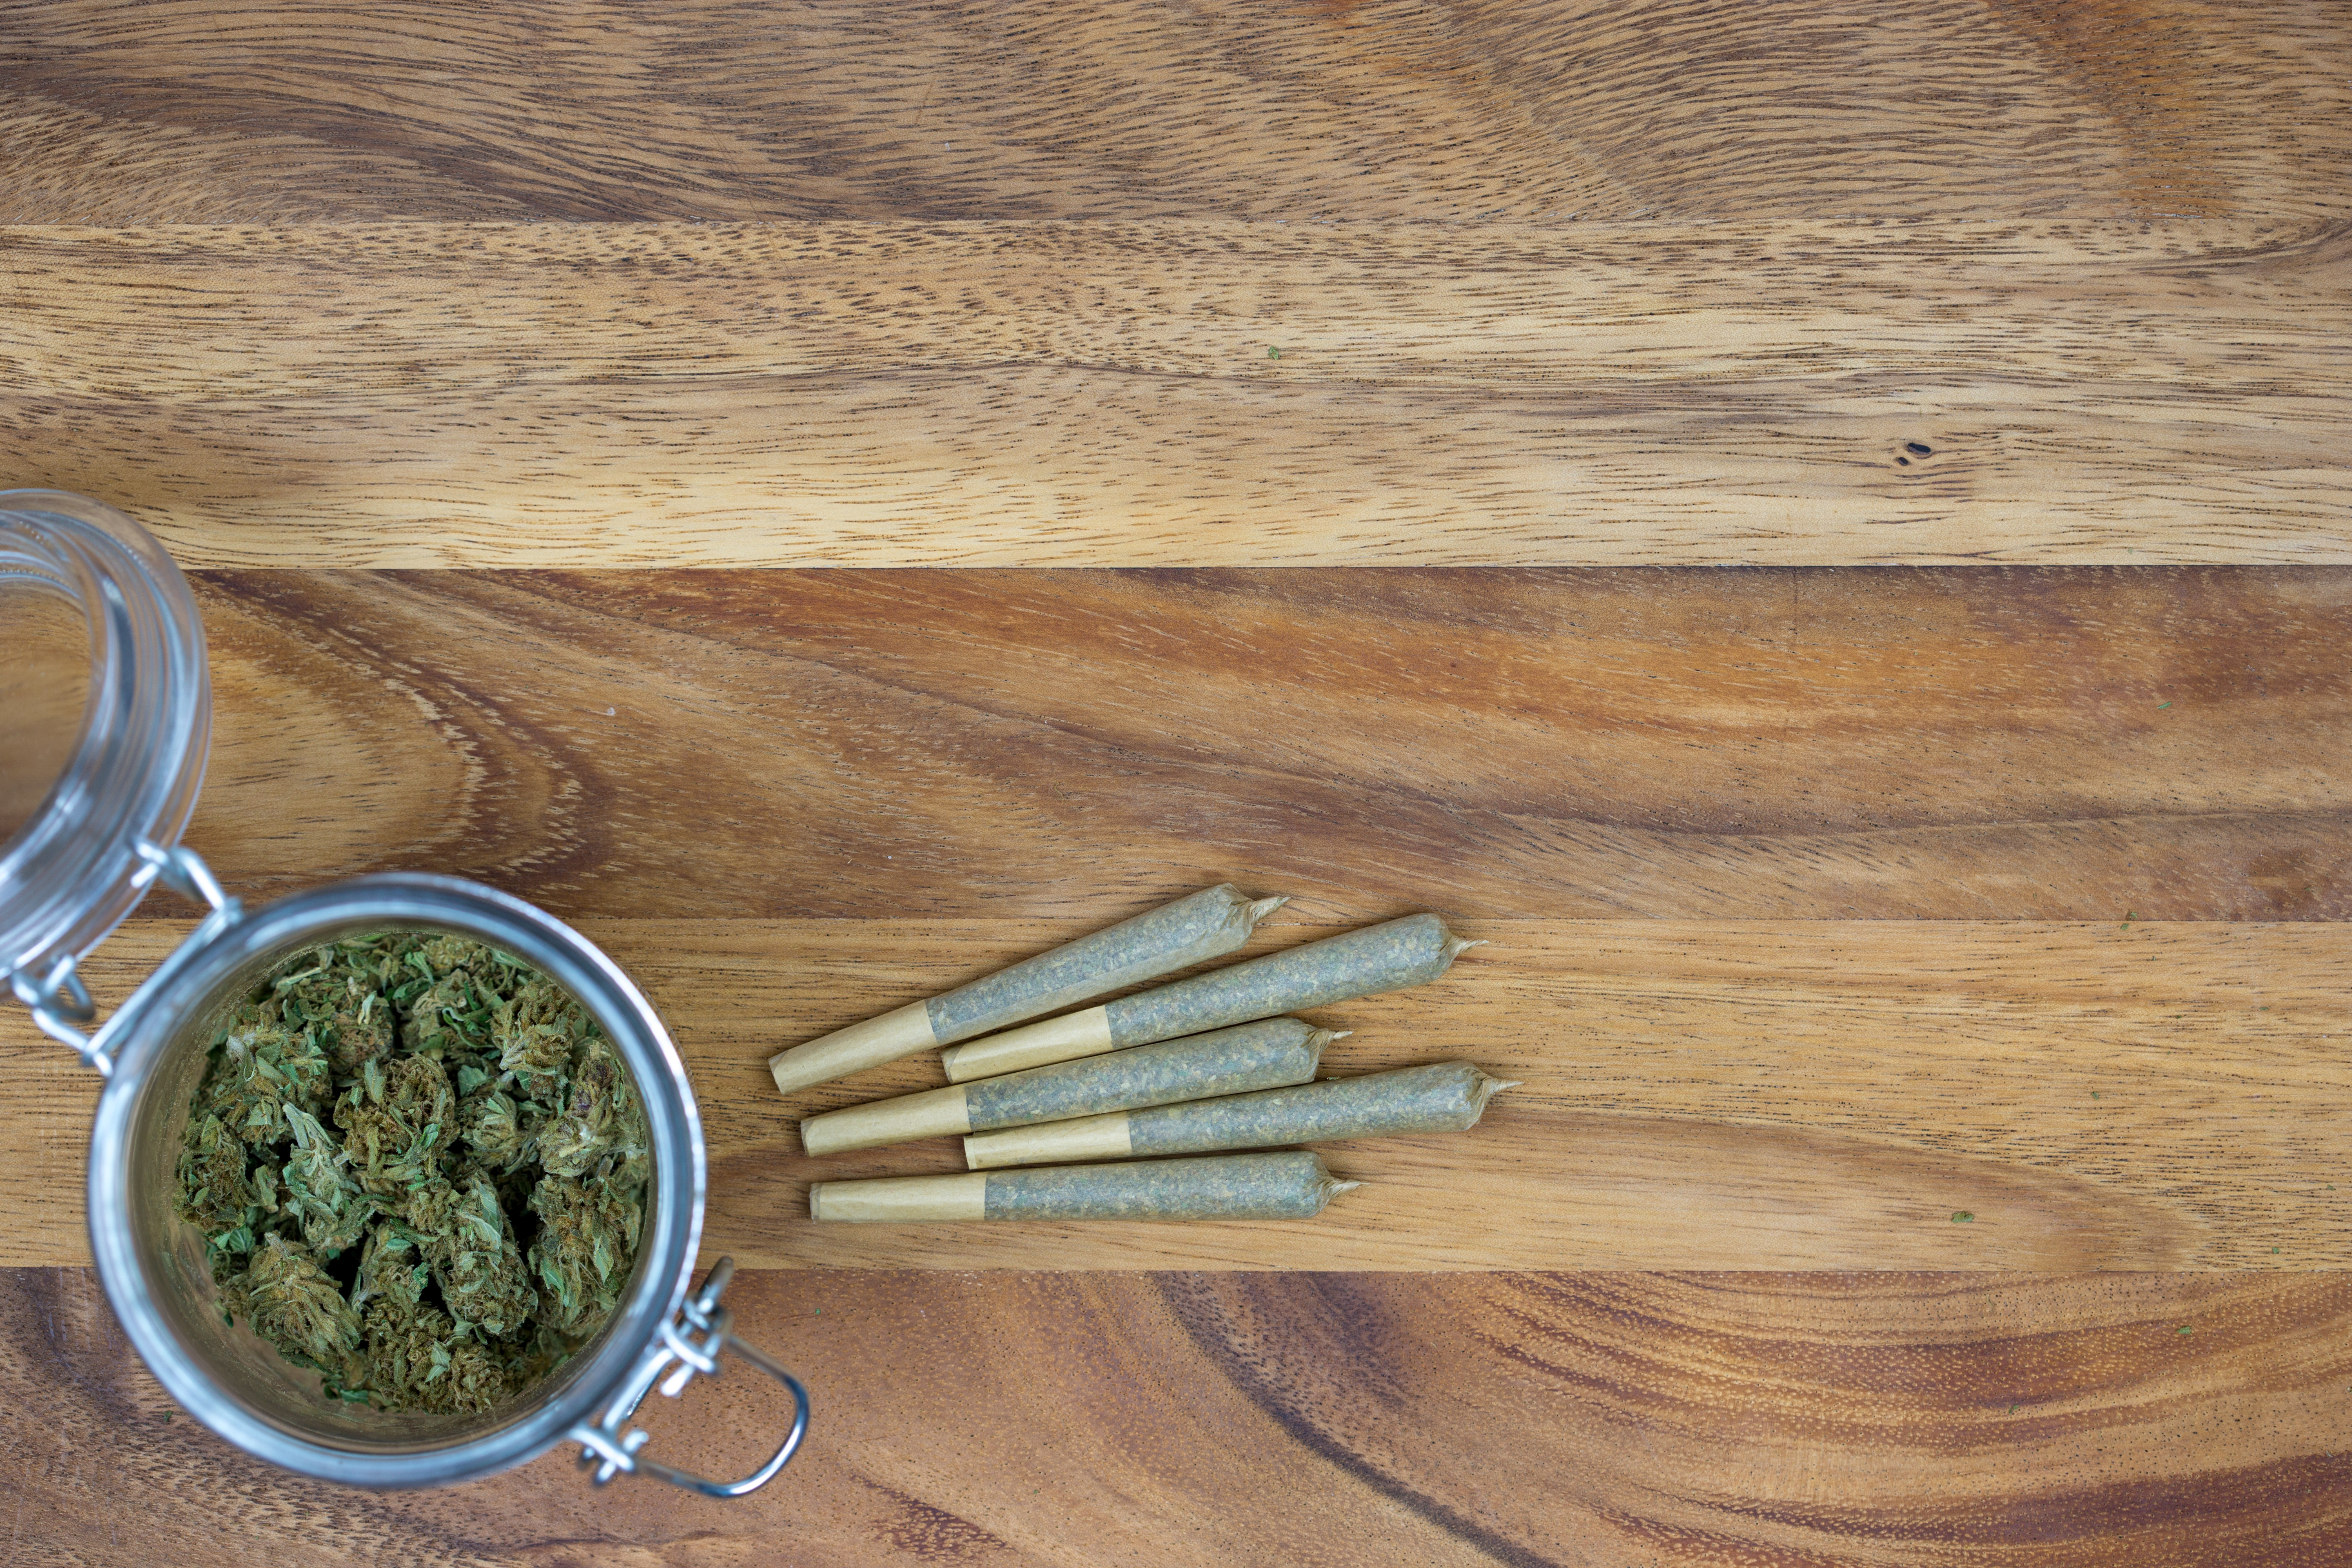 Weed in pot with joints on wooden surface